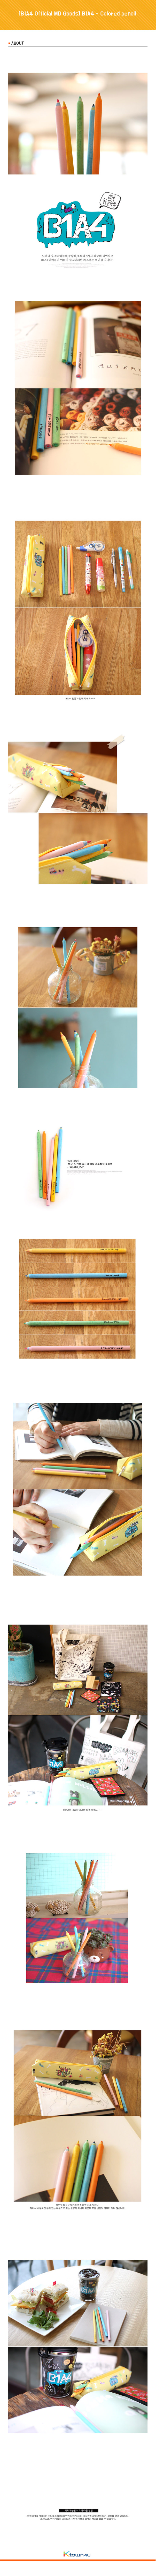 [B1A4 Official MD Goods] B1A4 - Colored pencil